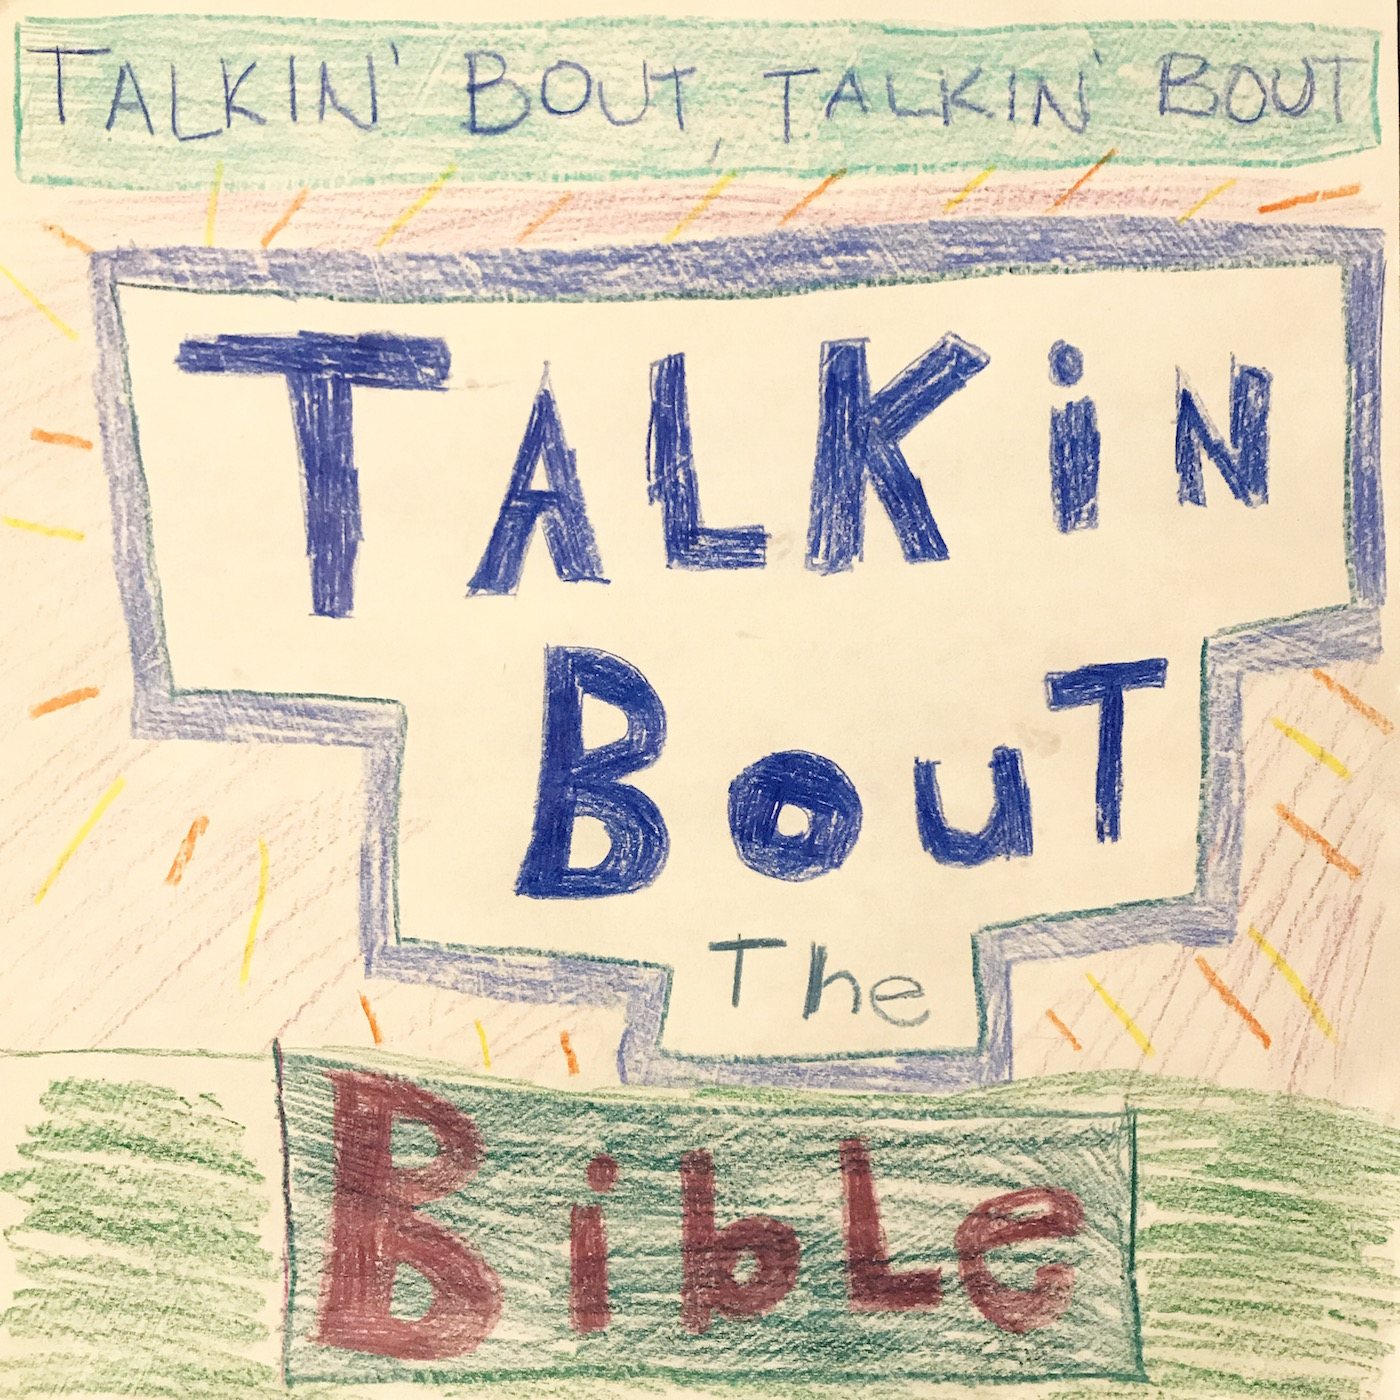 Talkin' Bout Talkin' Bout Talkin' Bout the Bible